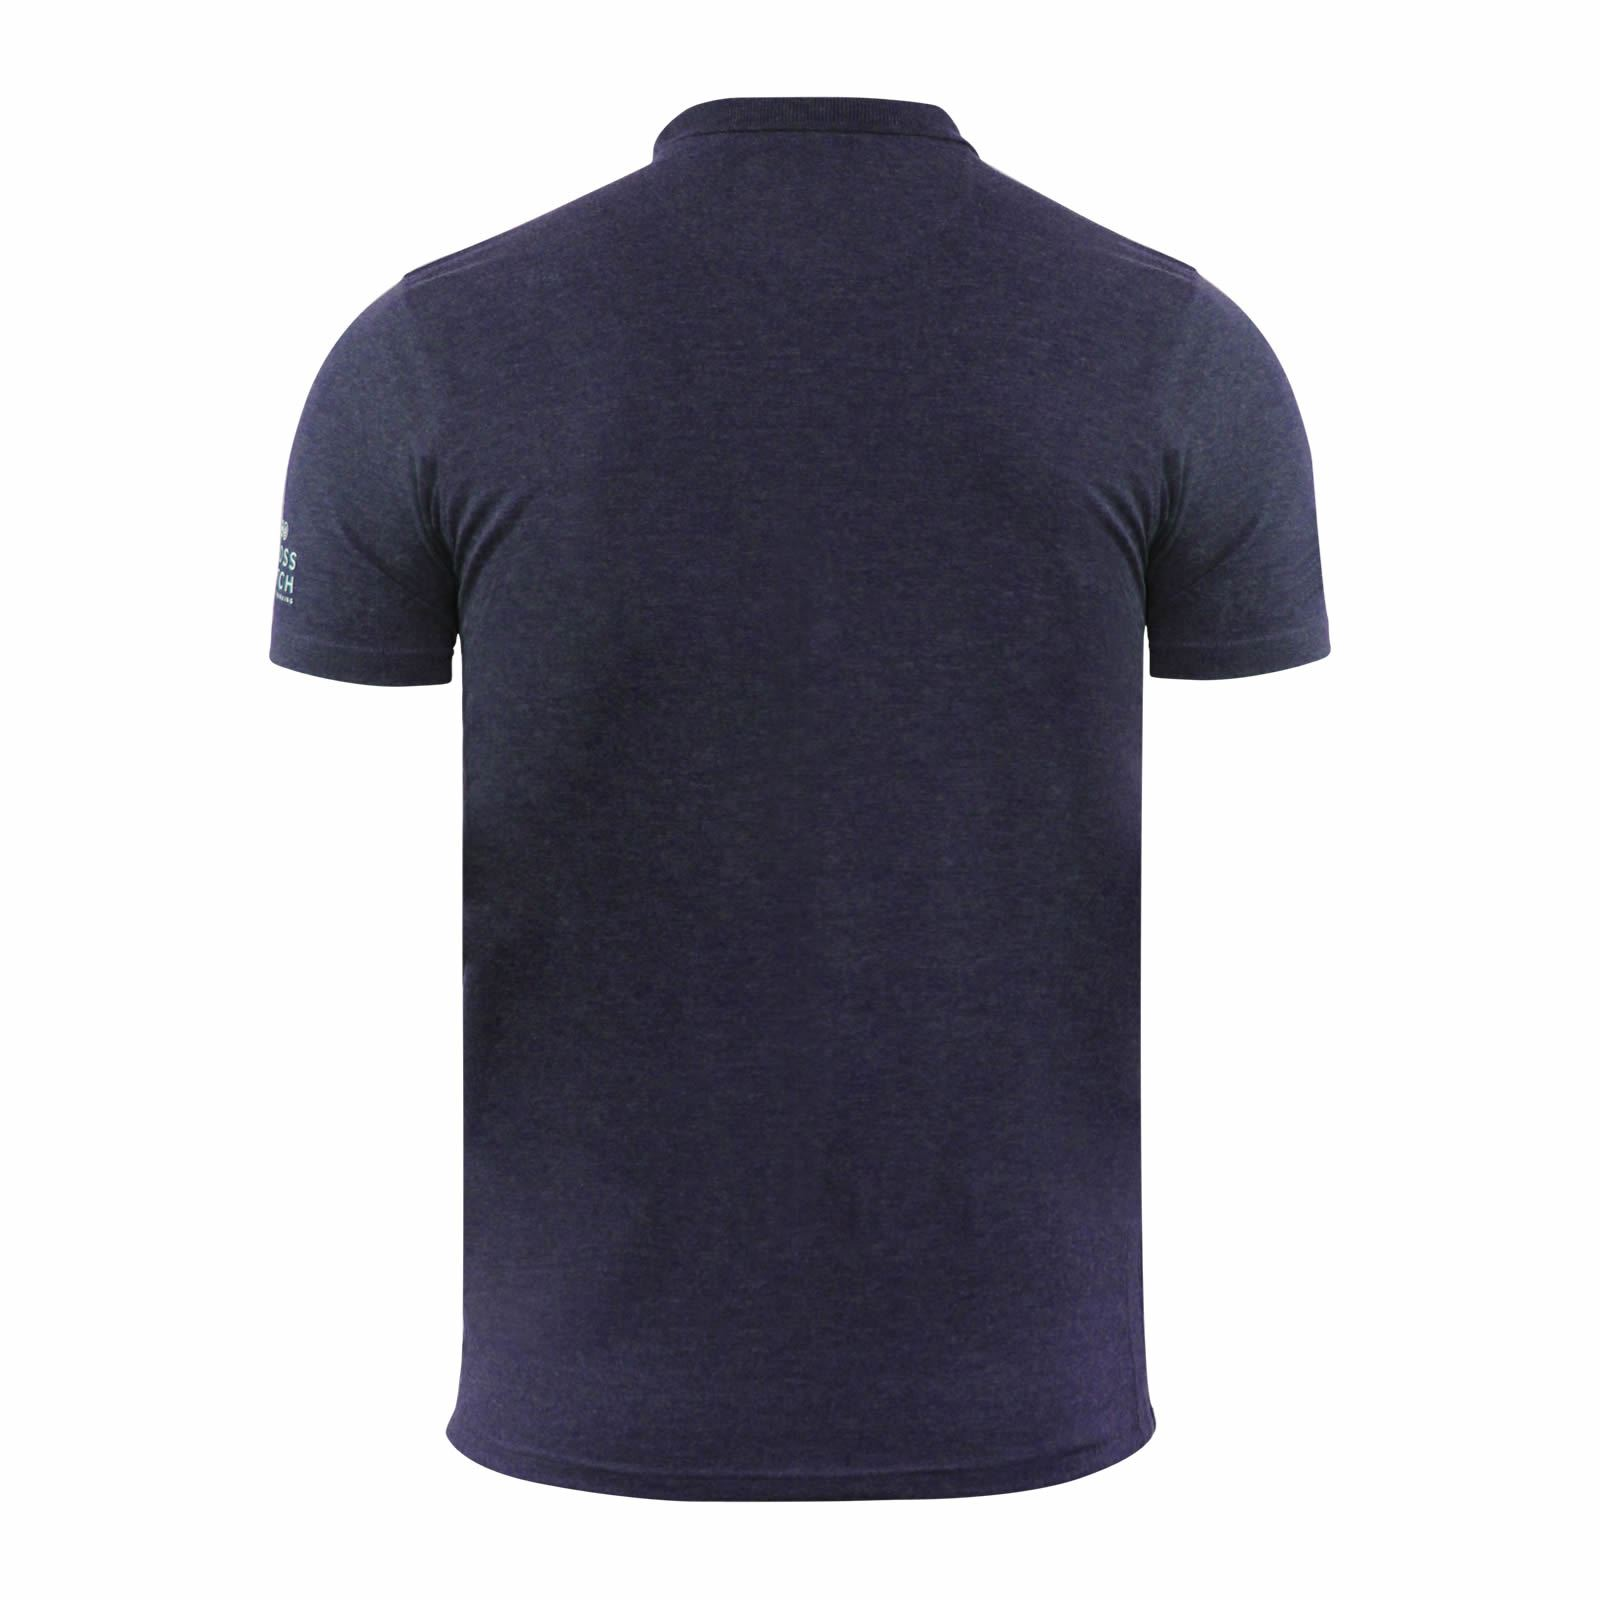 Mens-Polo-T-Shirt-Crosshatch-Evangels-Collared-Cotton-Short-Sleeve-Casual-Top thumbnail 22